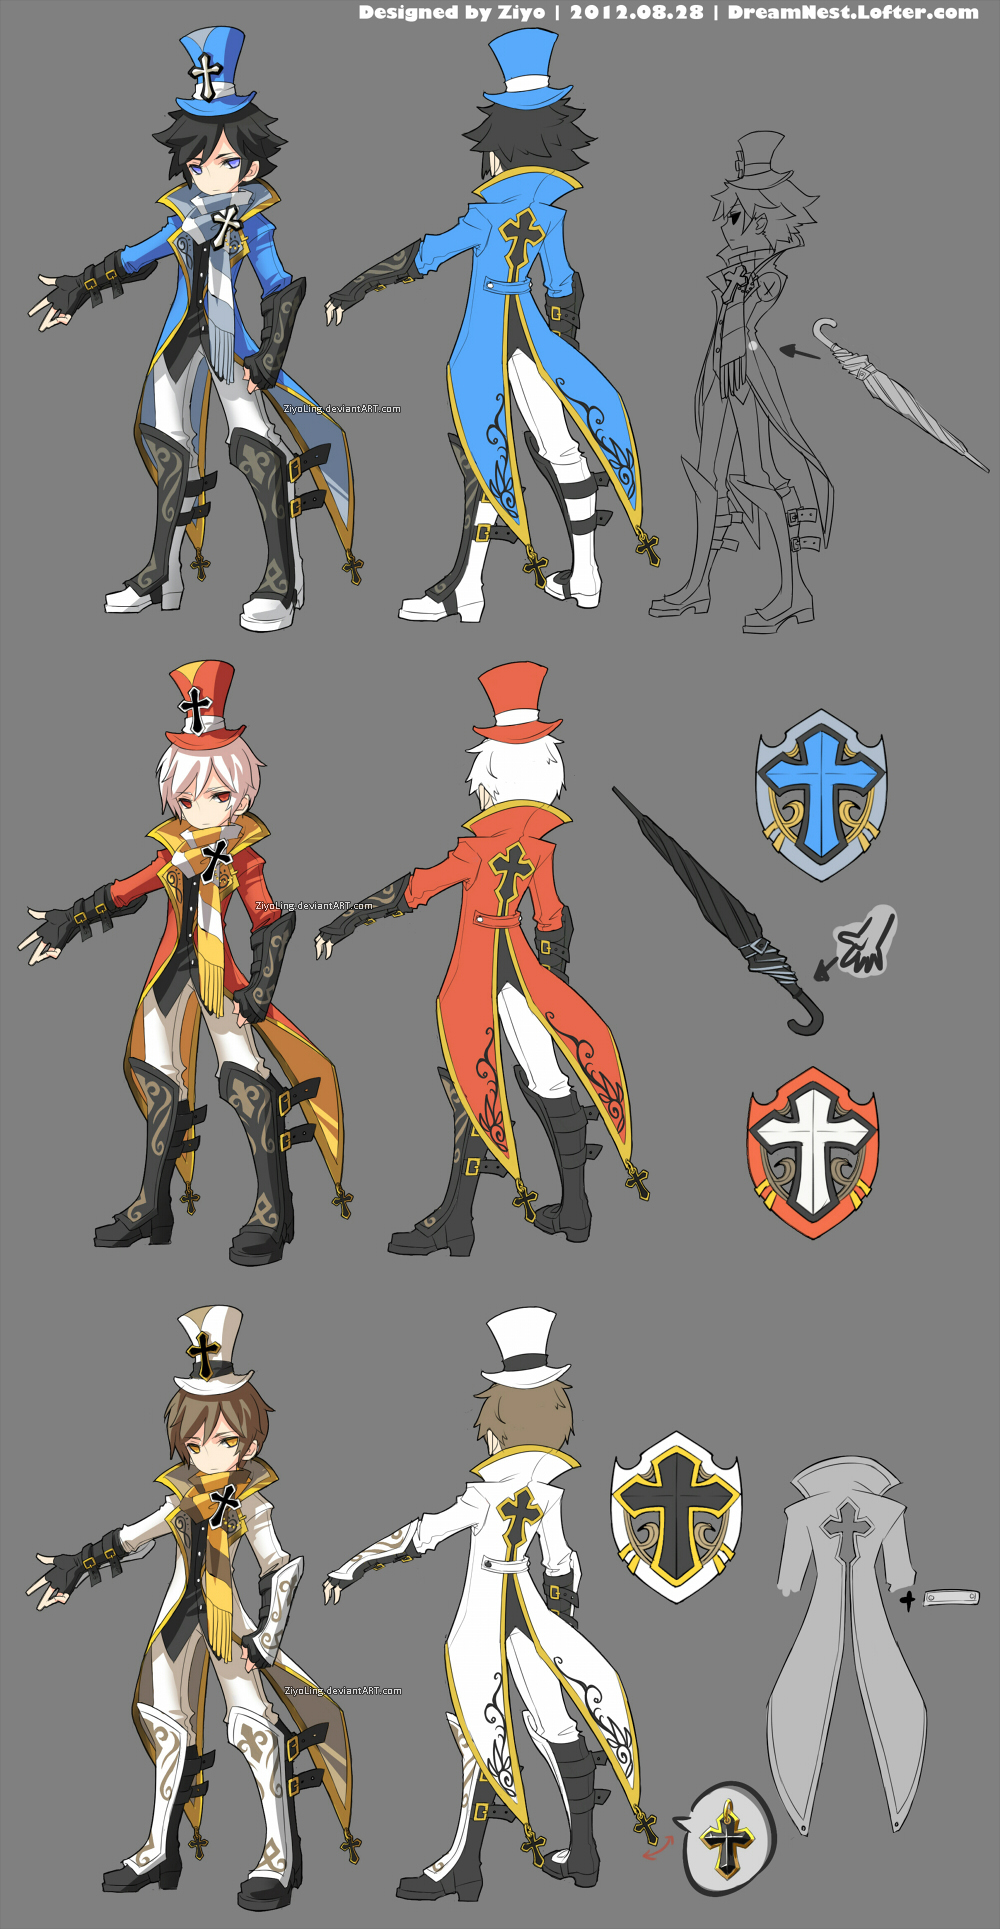 dragonnest costume design cleric by ziyoling on deviantart